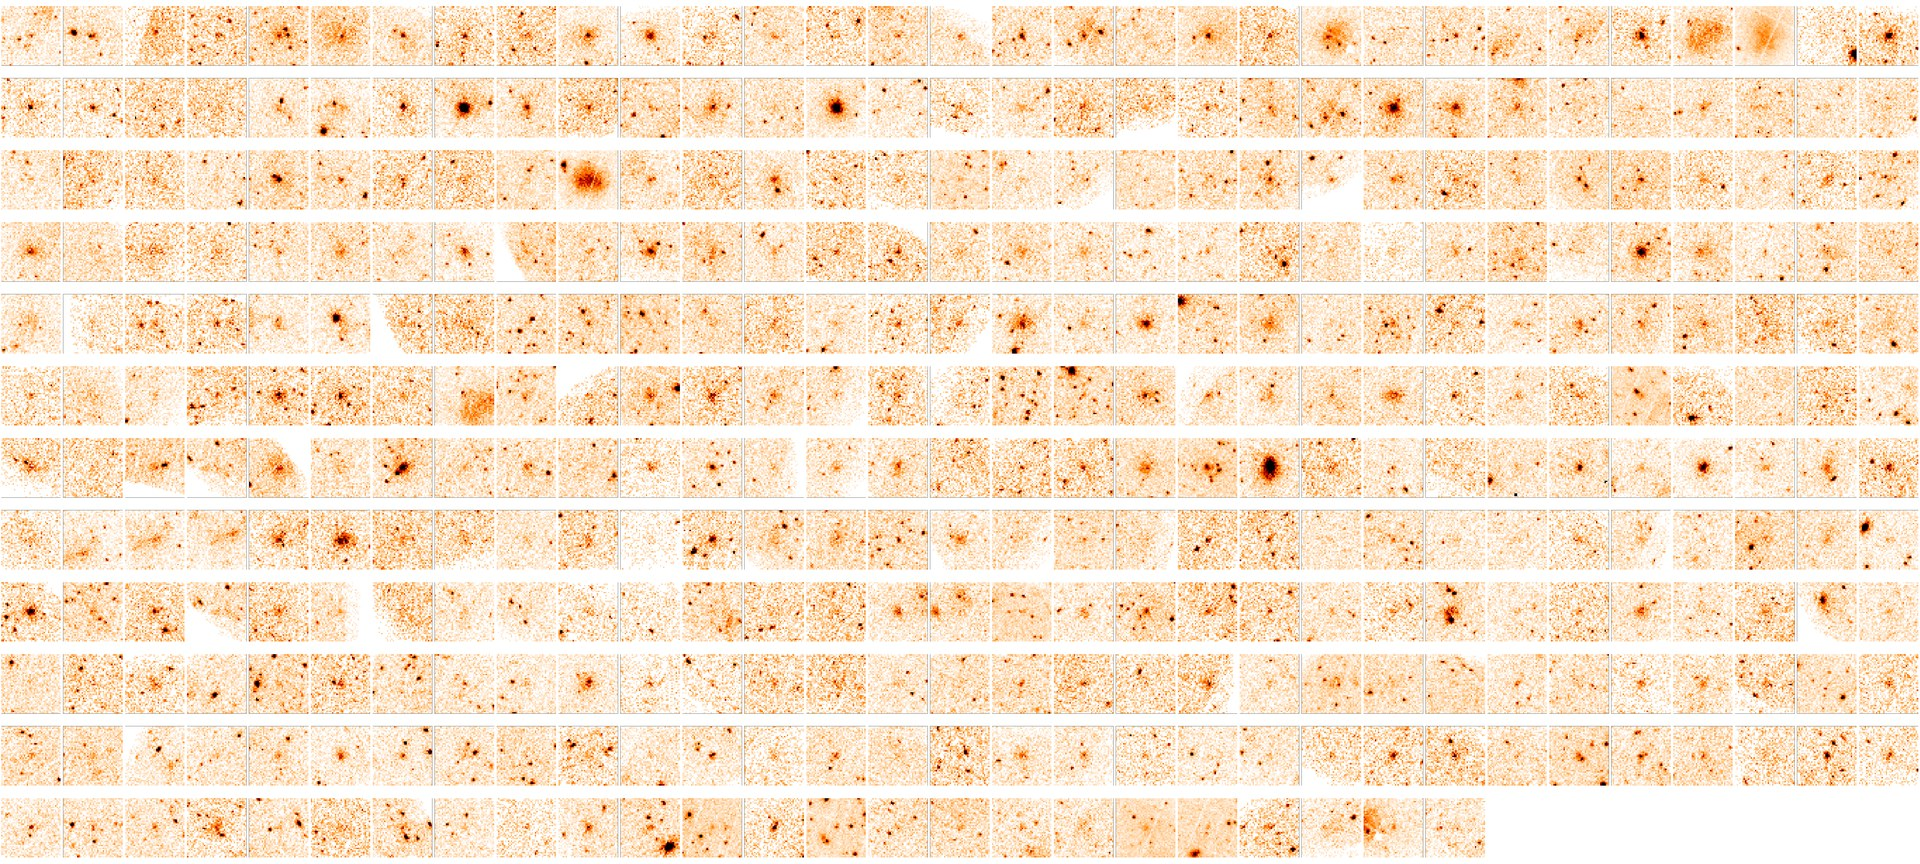 The 365 galaxy clusters of the XXL Survey – X-ray view: